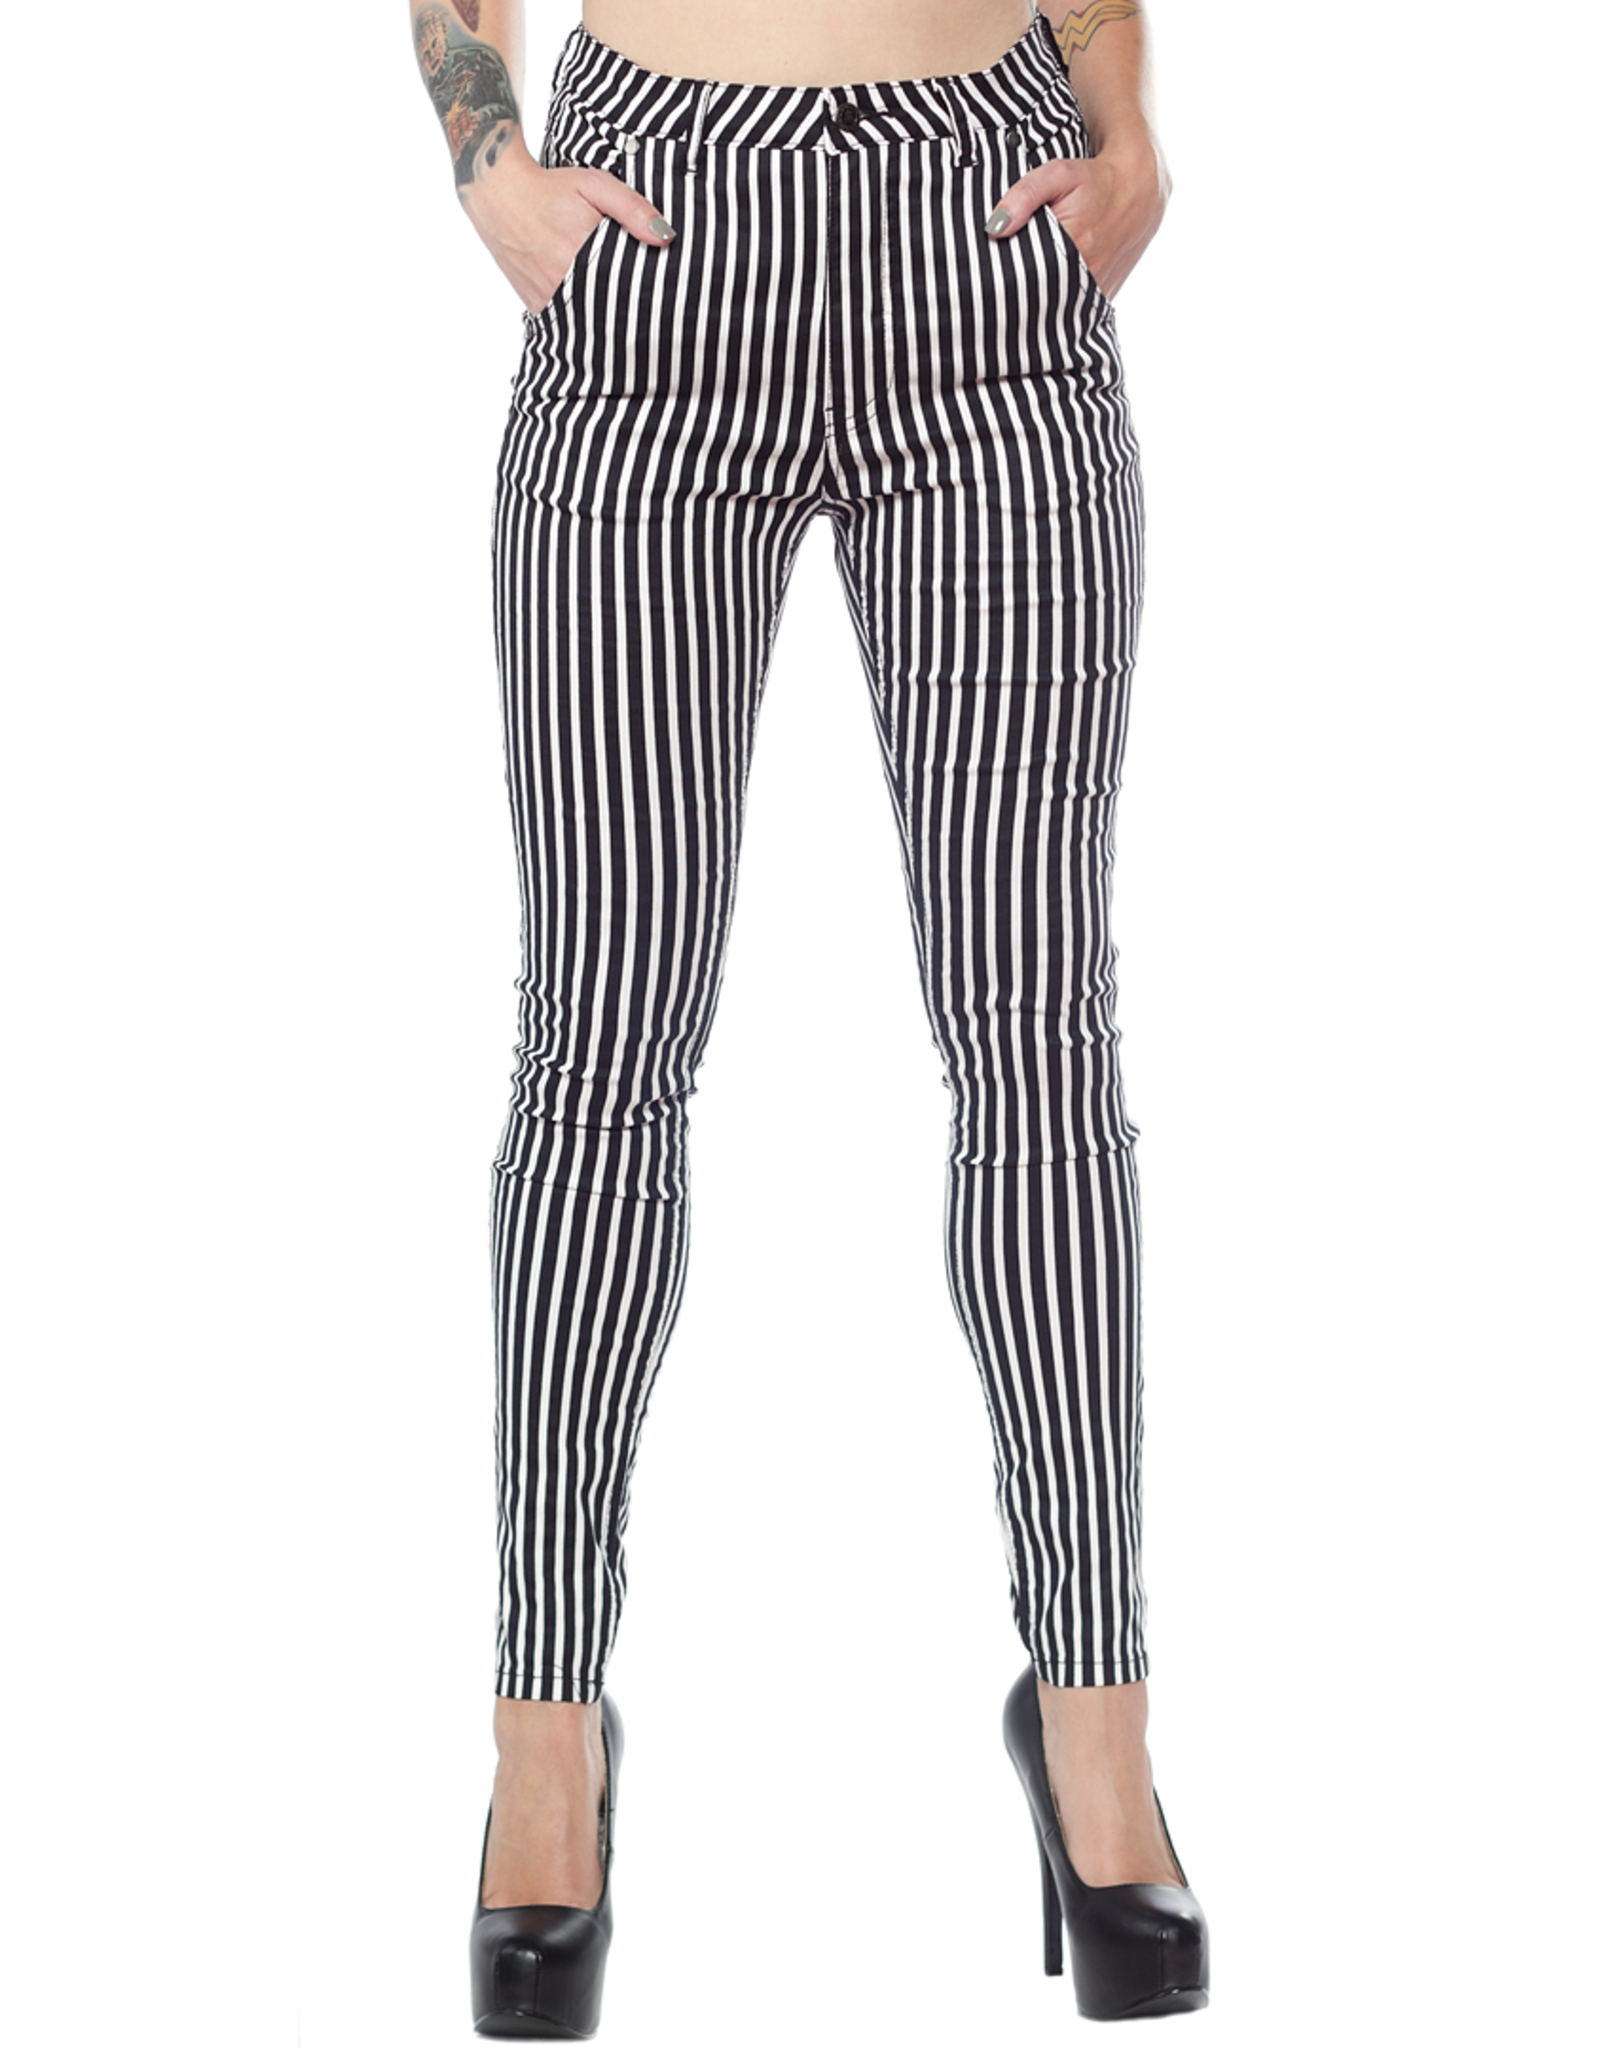 SOURPUSS - Essential 5 pocket Striped B/W Pants